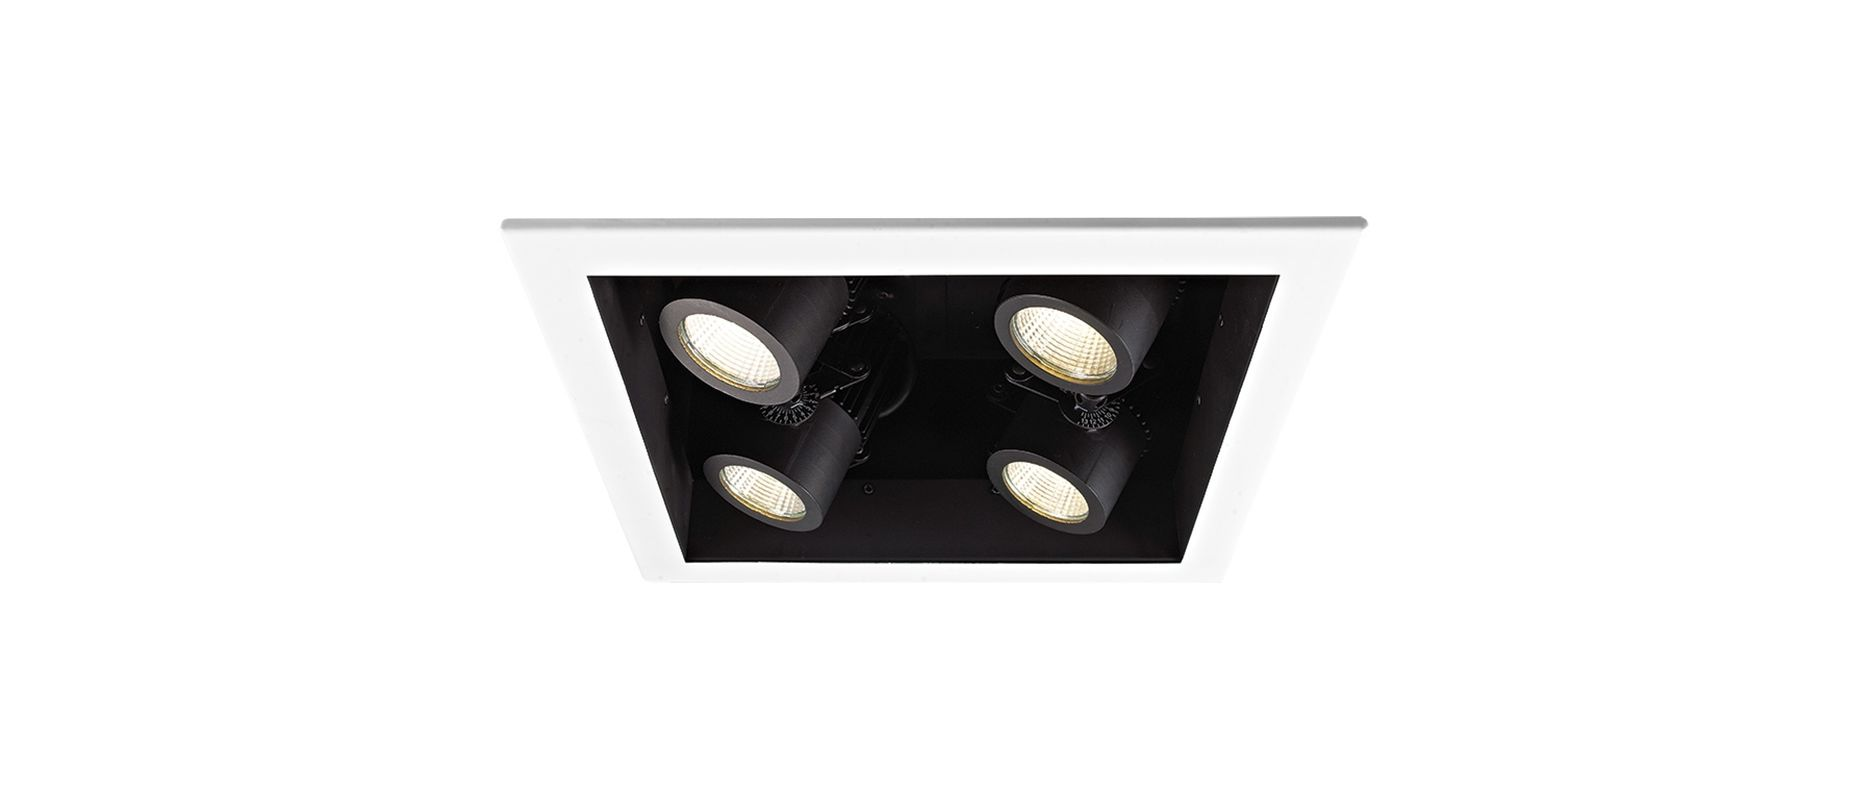 WAC Lighting MT-4LD226N-F35 4 Light Energy Star 3500K High Output LED